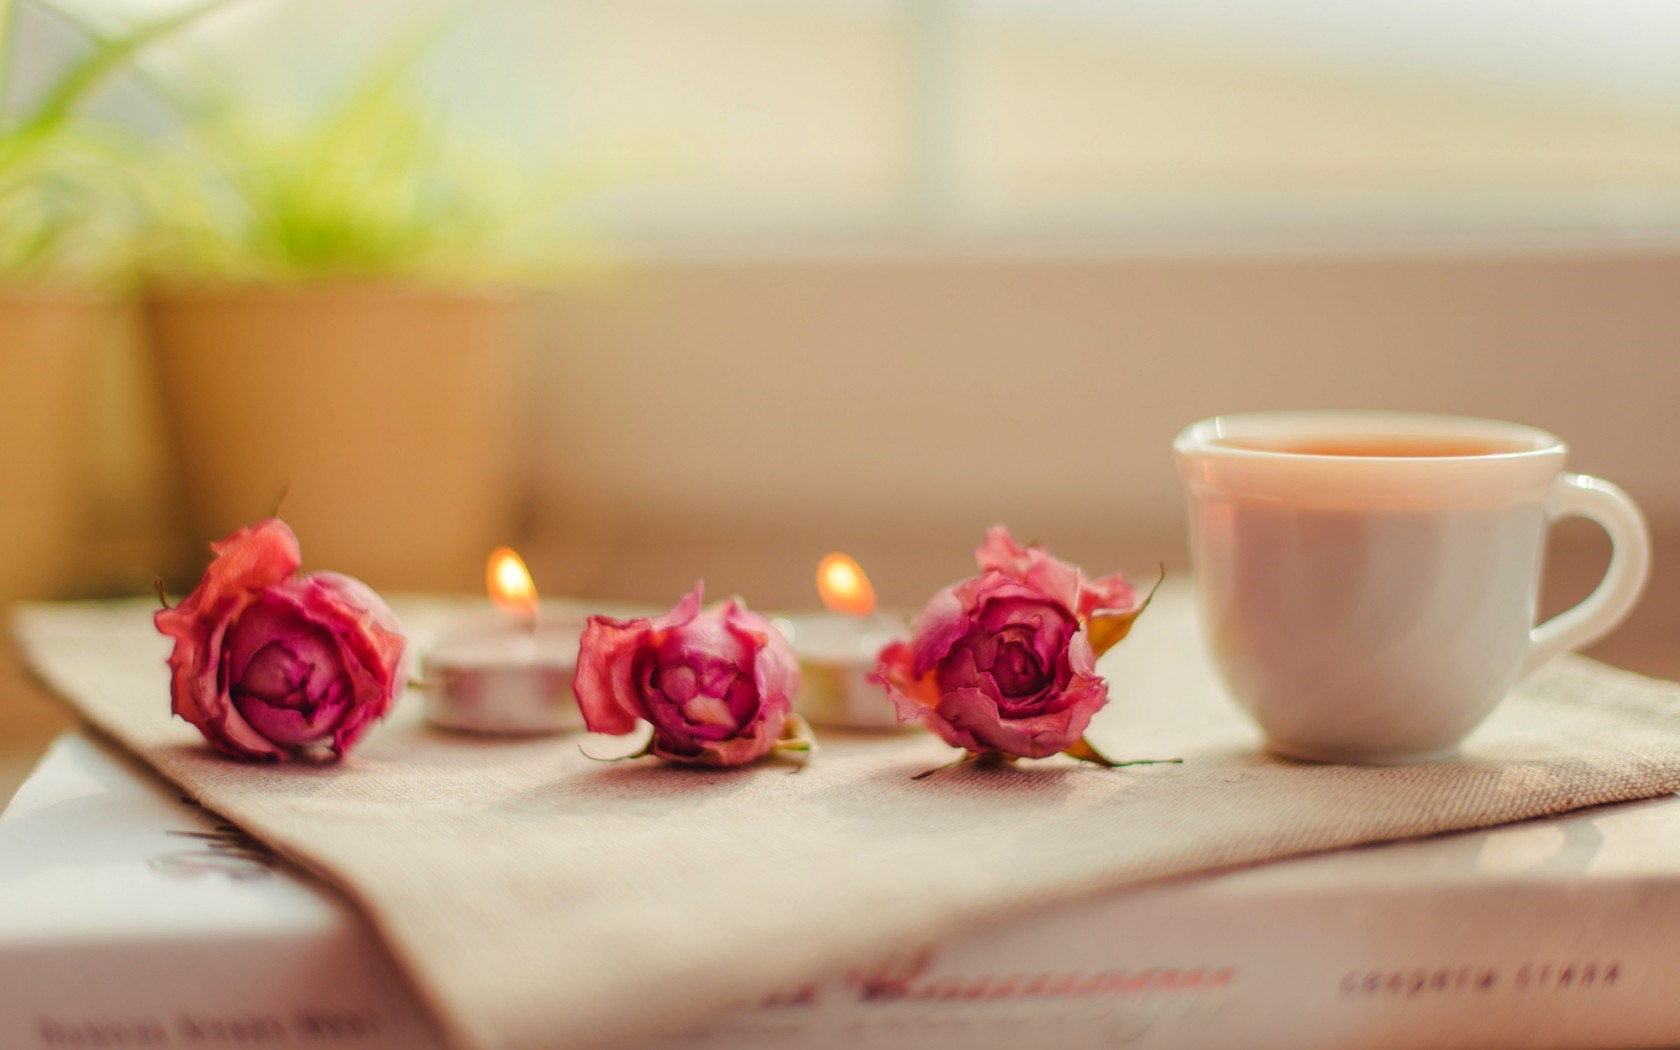 candles-cup-roses-pink-flowers-mood-hd-wallpaper